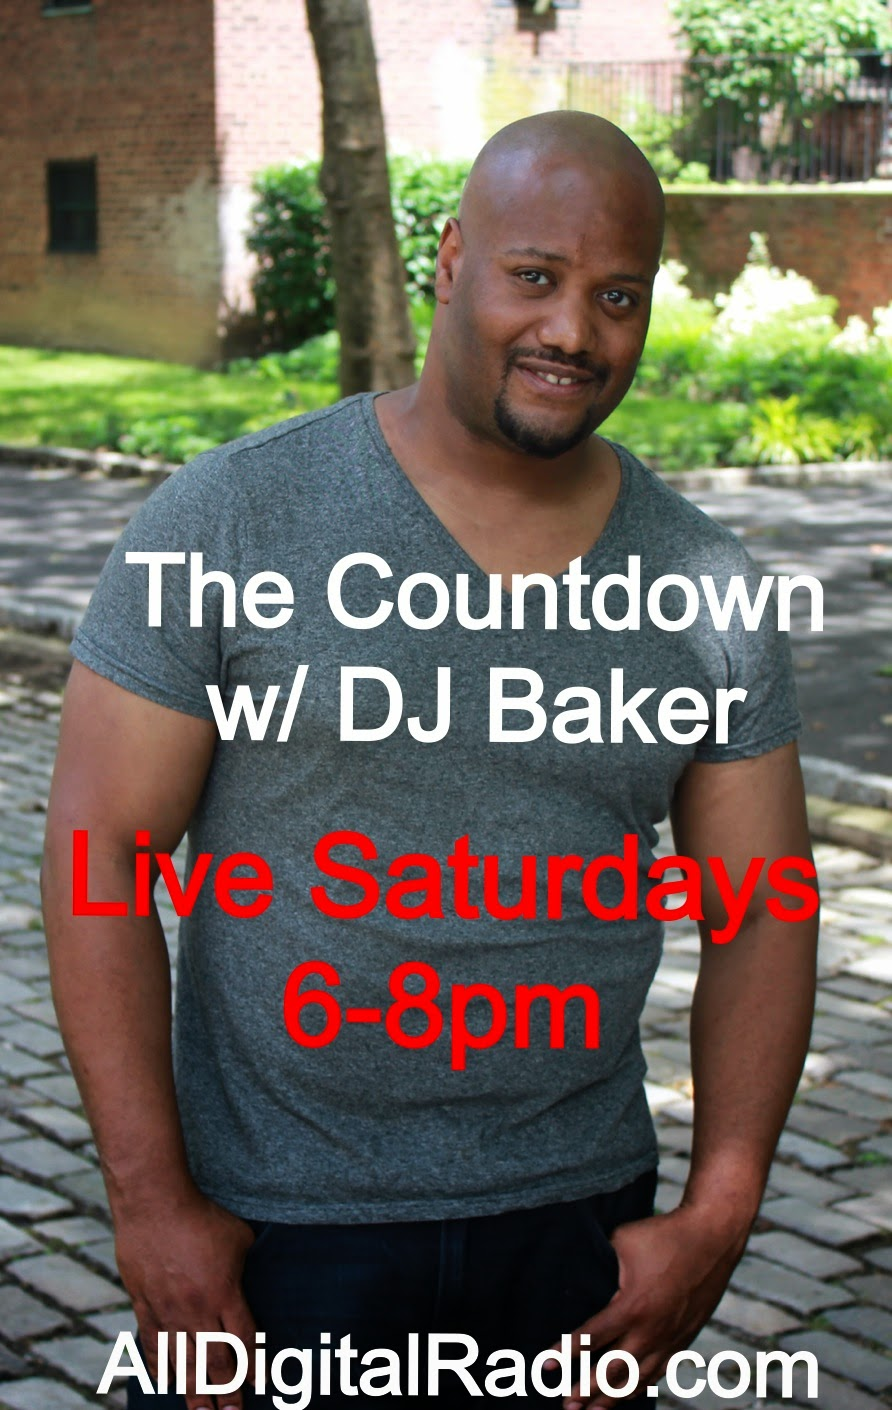 Want The Countdown w/DJ Baker